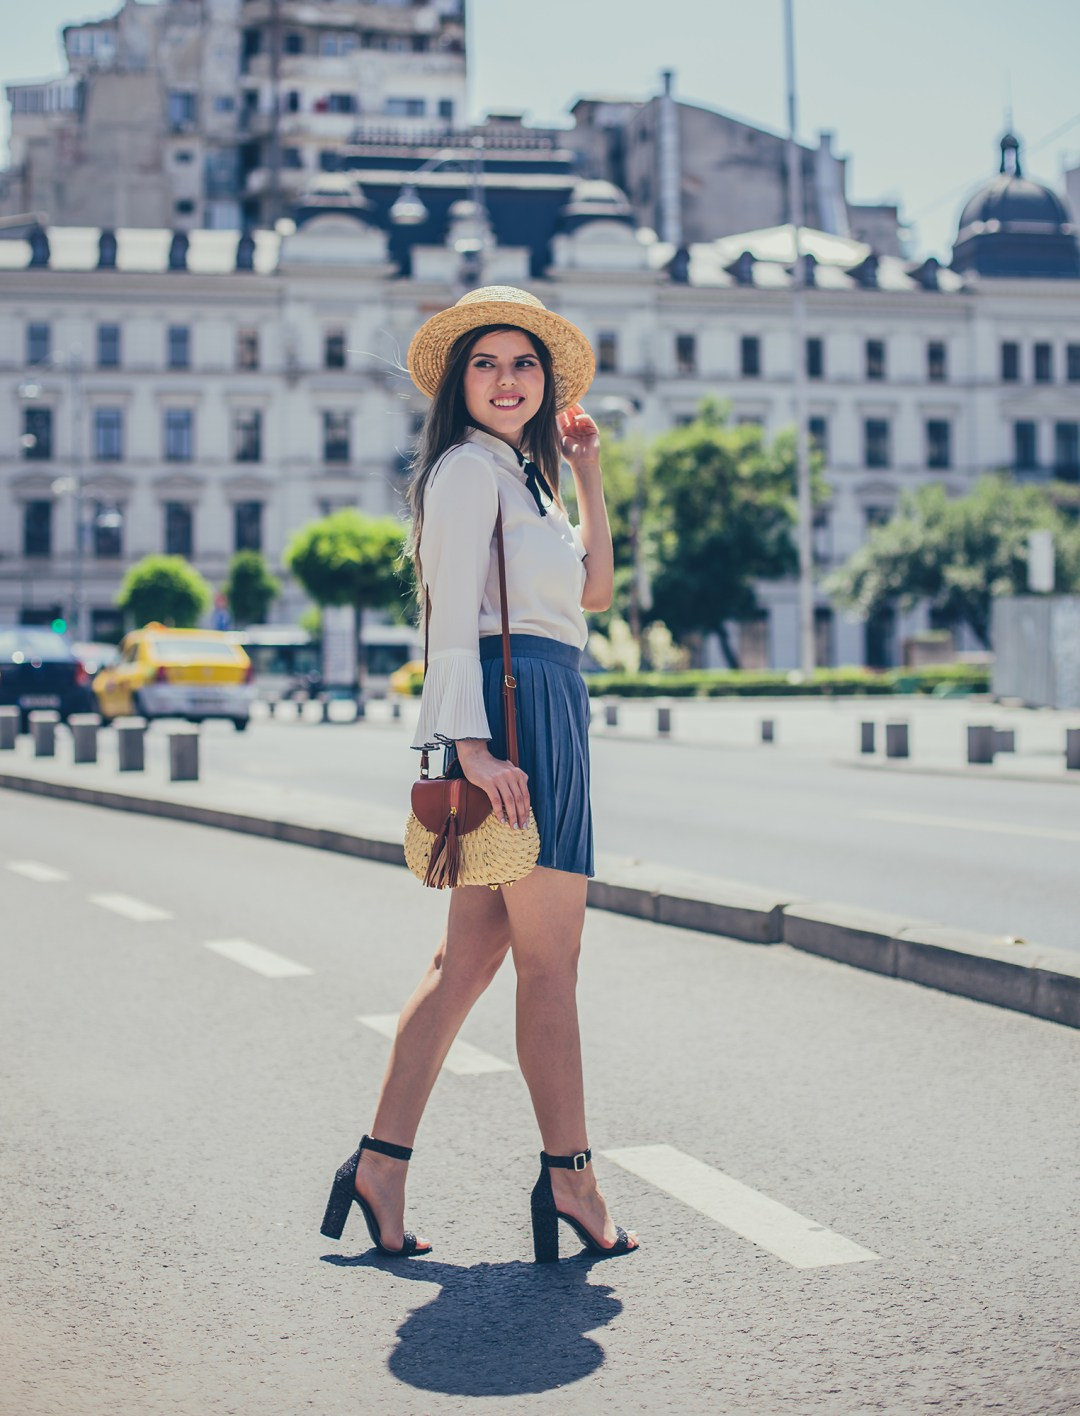 street photos romanian blogger vip shop outfit